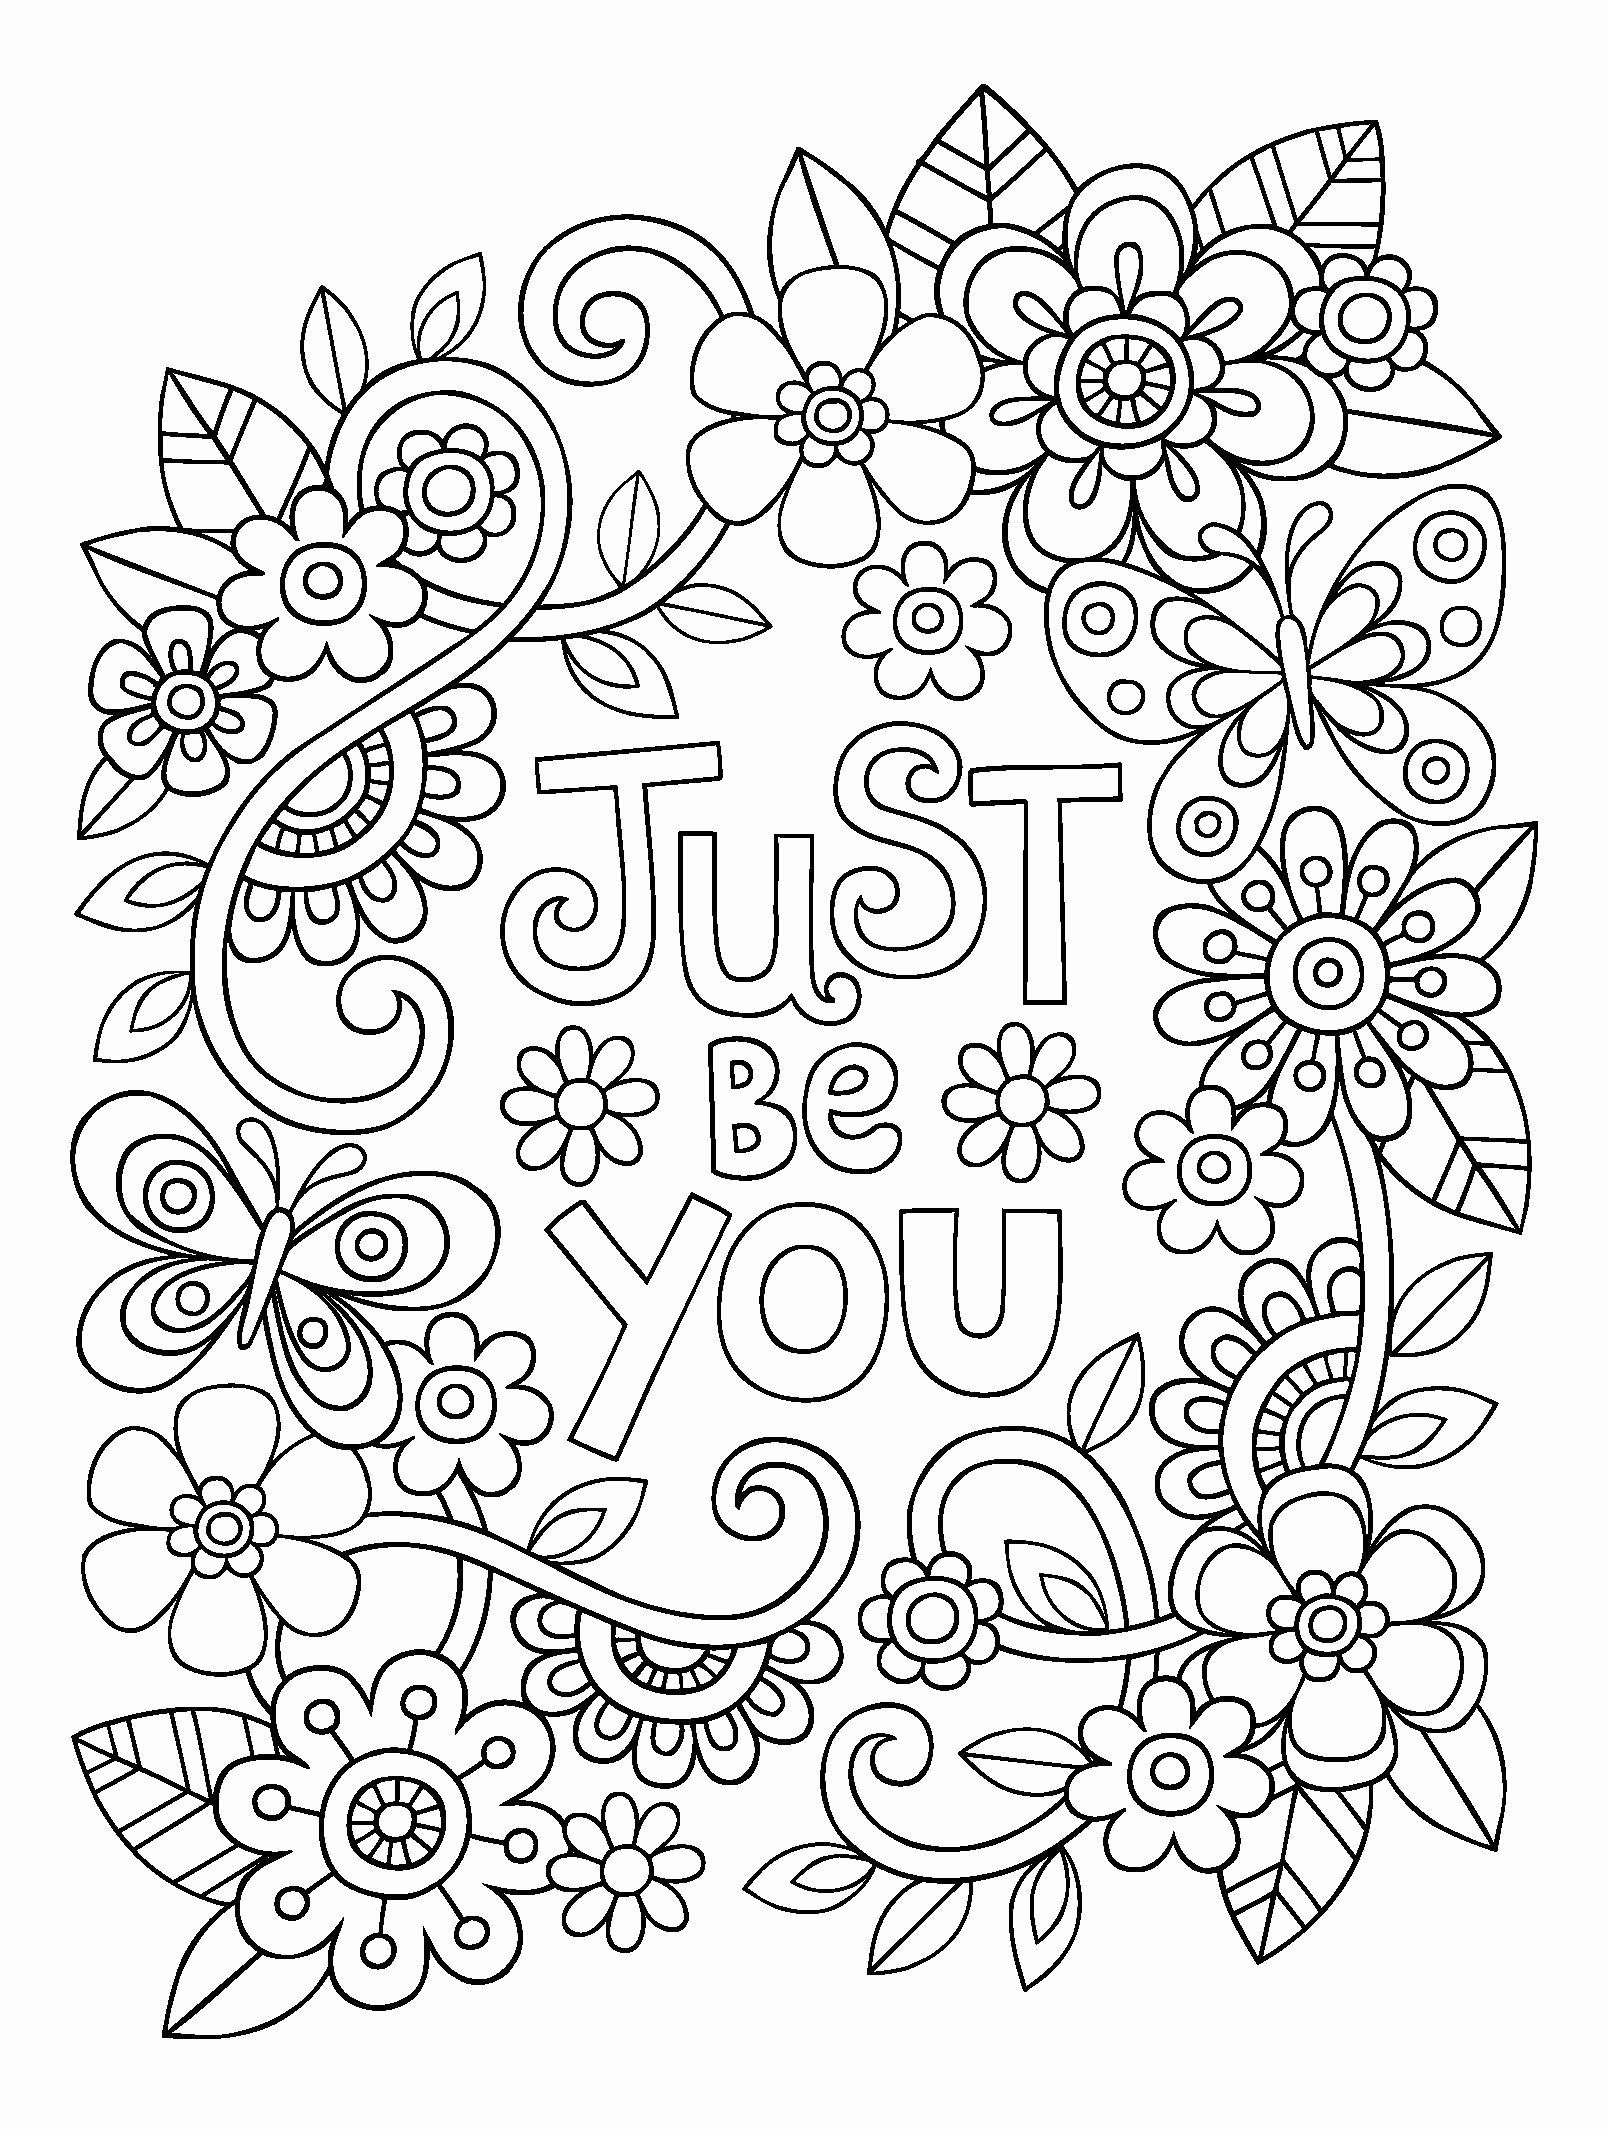 21 Printable Inspirational Coloring Pages Hellboyfull Org Coloring Pages Inspirational Quote Coloring Pages Inspirational Quotes Coloring